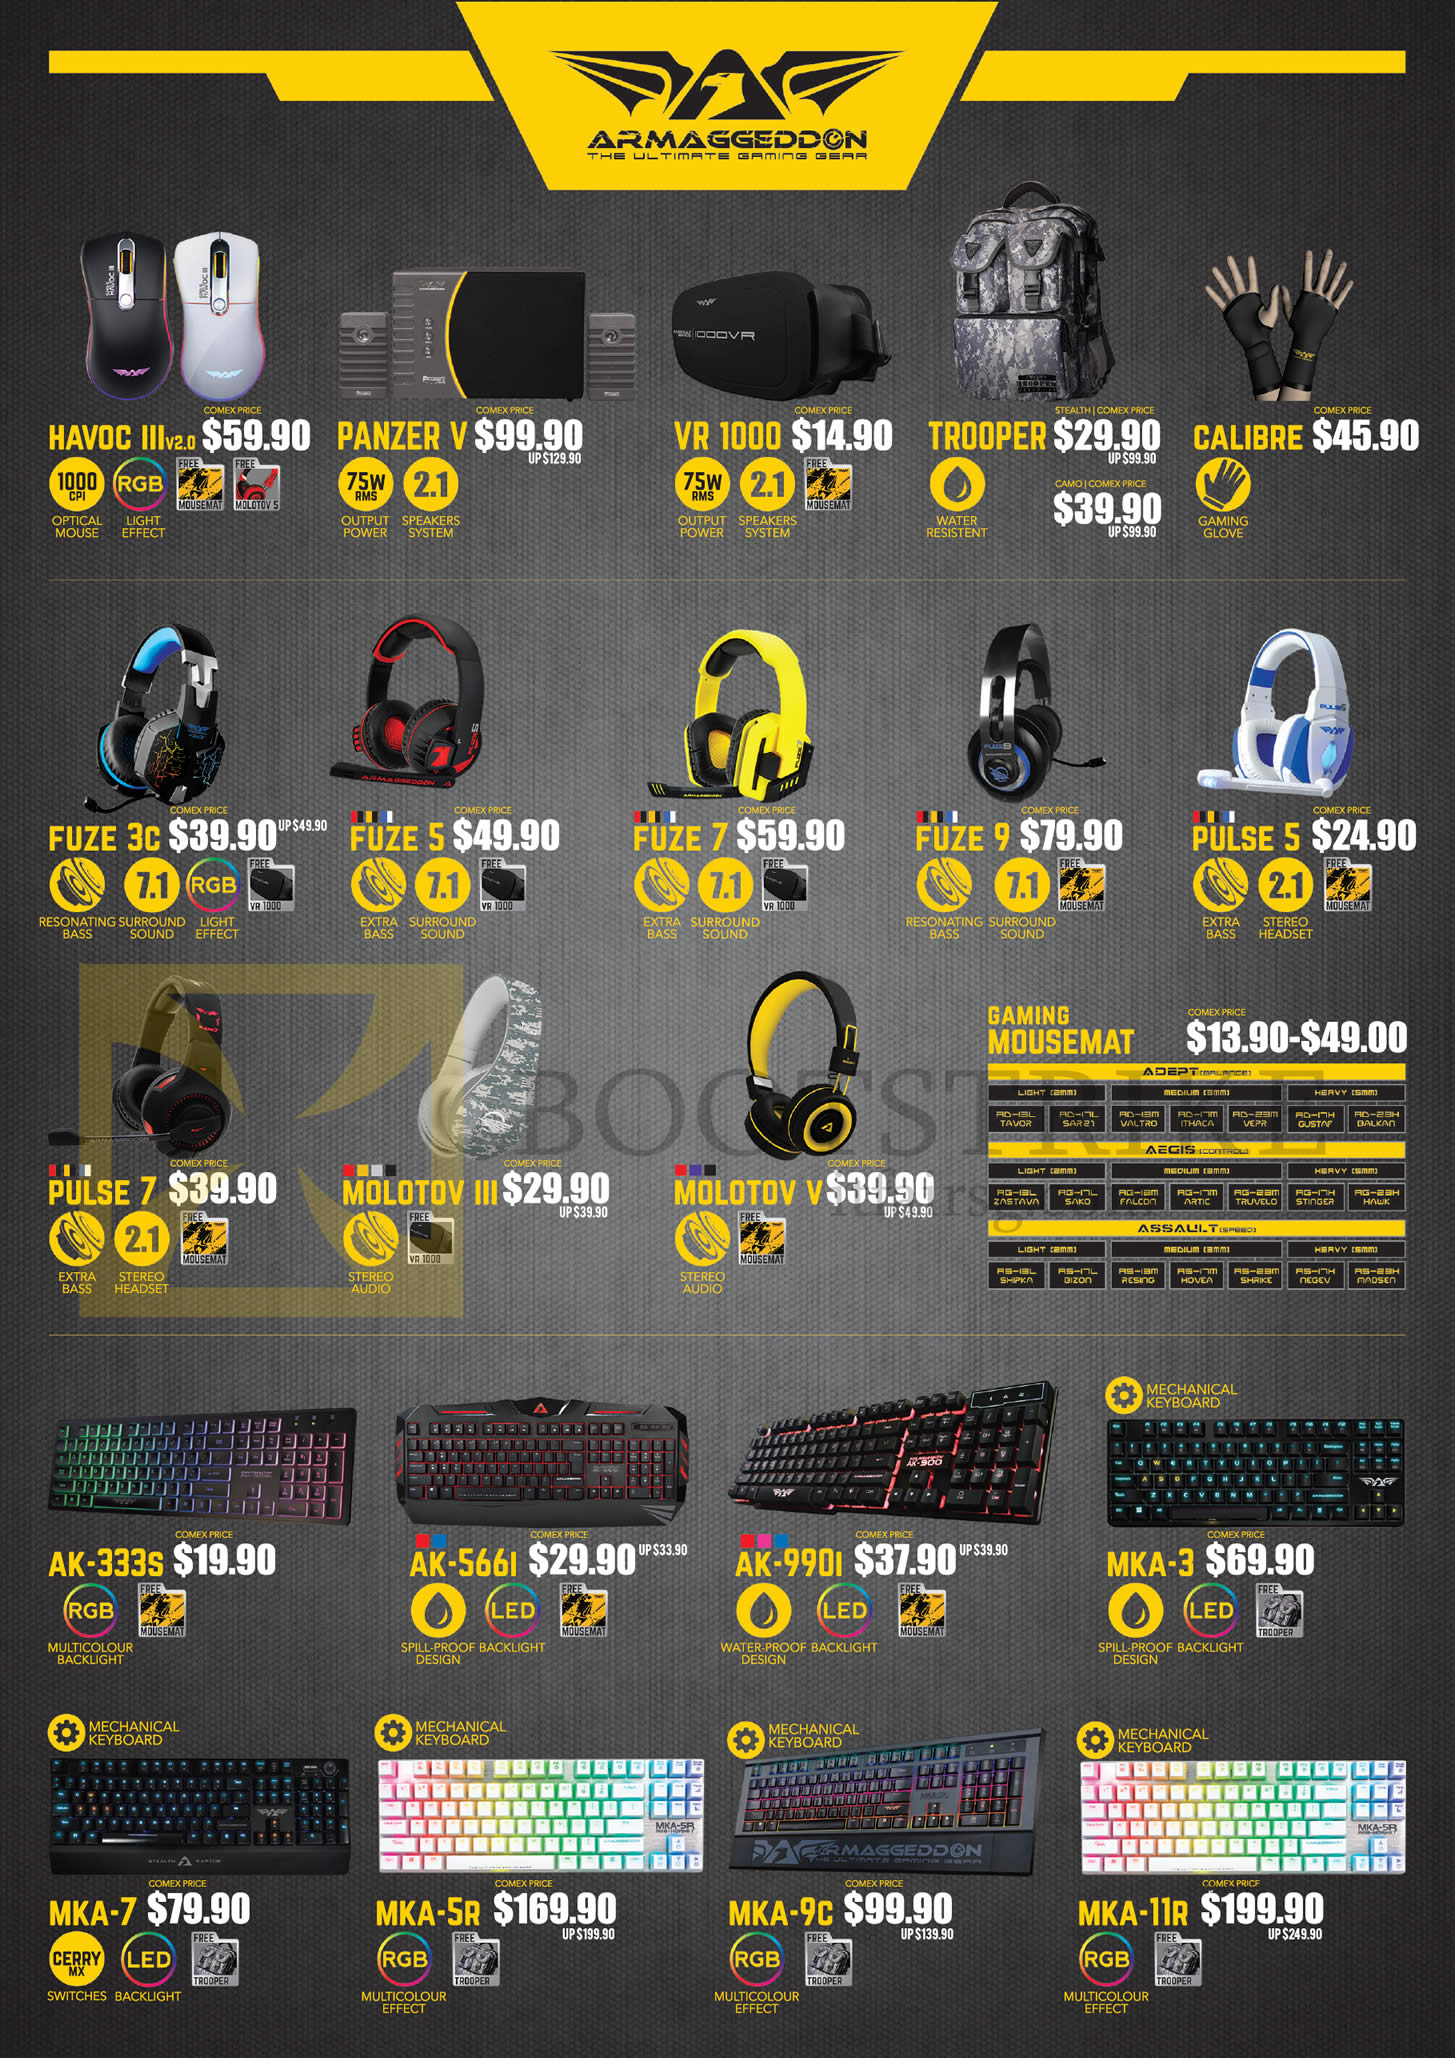 COMEX 2016 price list image brochure of Leapfrog Armaggeddon Mouse, Backpack, Handgloves, Headphones, Keyboards, Havoc III, Panzer V, VR 1000, Trooper, Calibre, Fuze 3c, 5, Pulse 5, 7, AK-333S, 566I, 990I